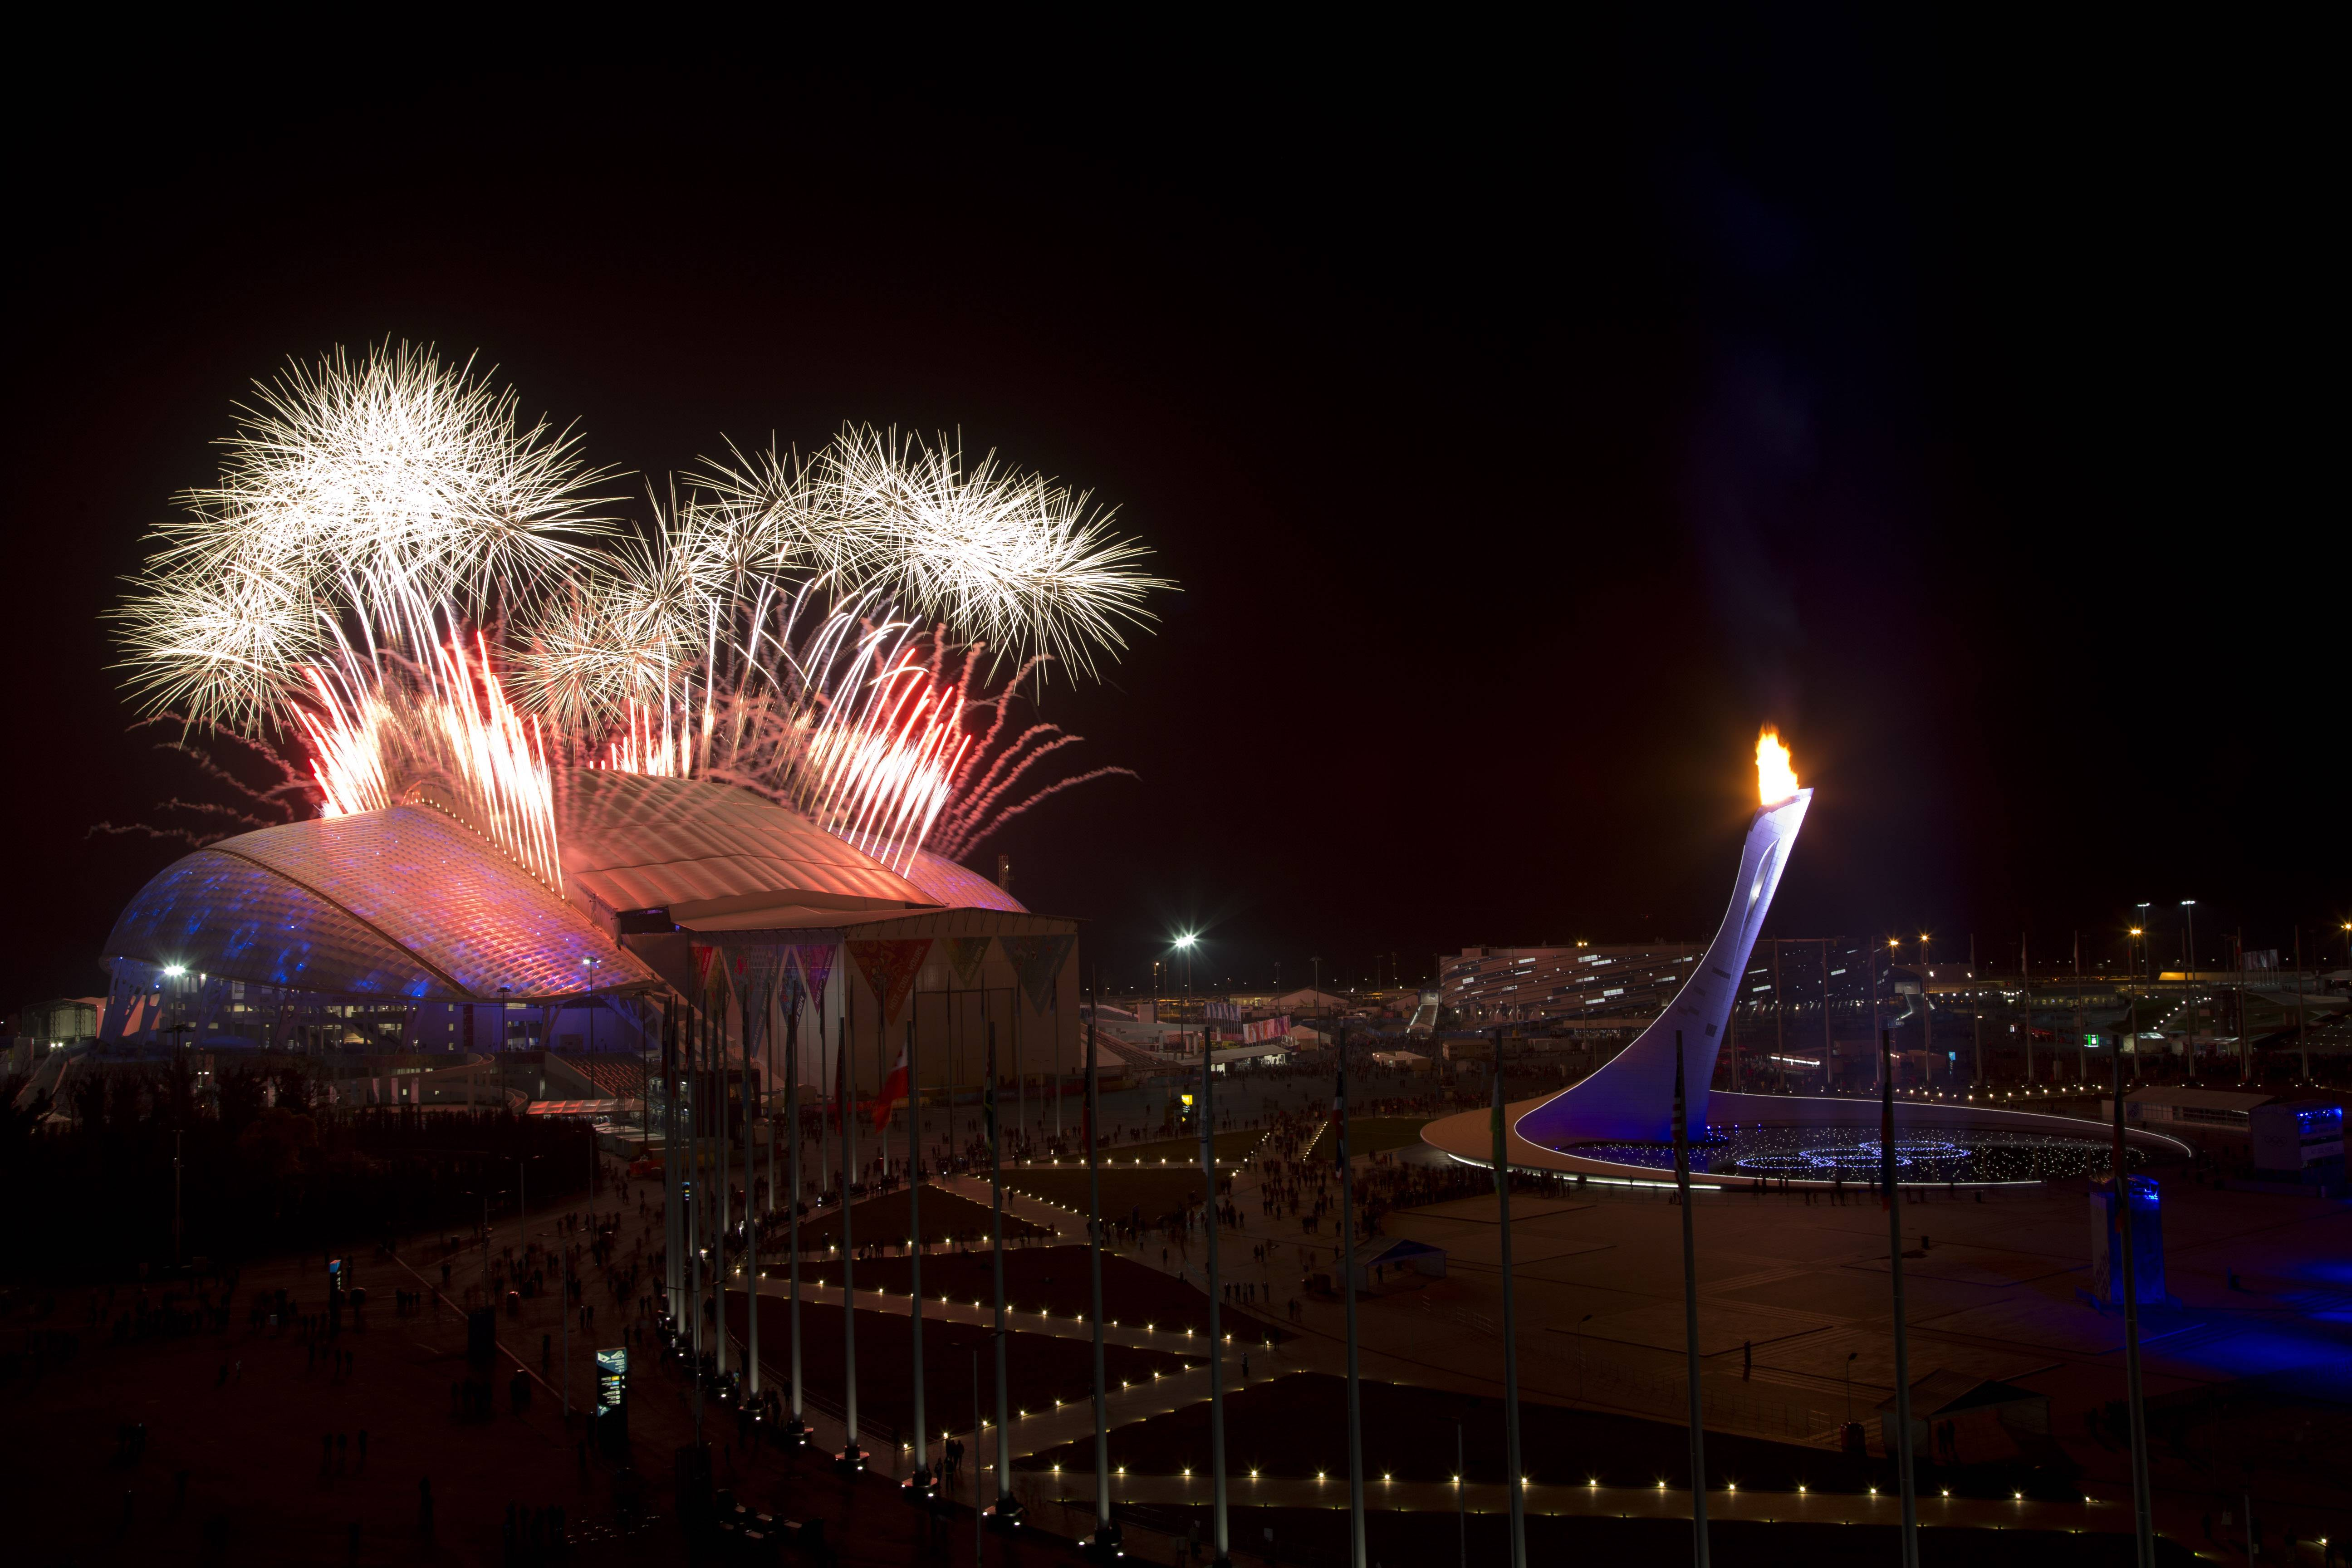 Fireworks explode seen over Olympic Park during the closing ceremony of the 2014 Winter Olympics, Sunday, Feb. 23, 2014, in Sochi, Russia.